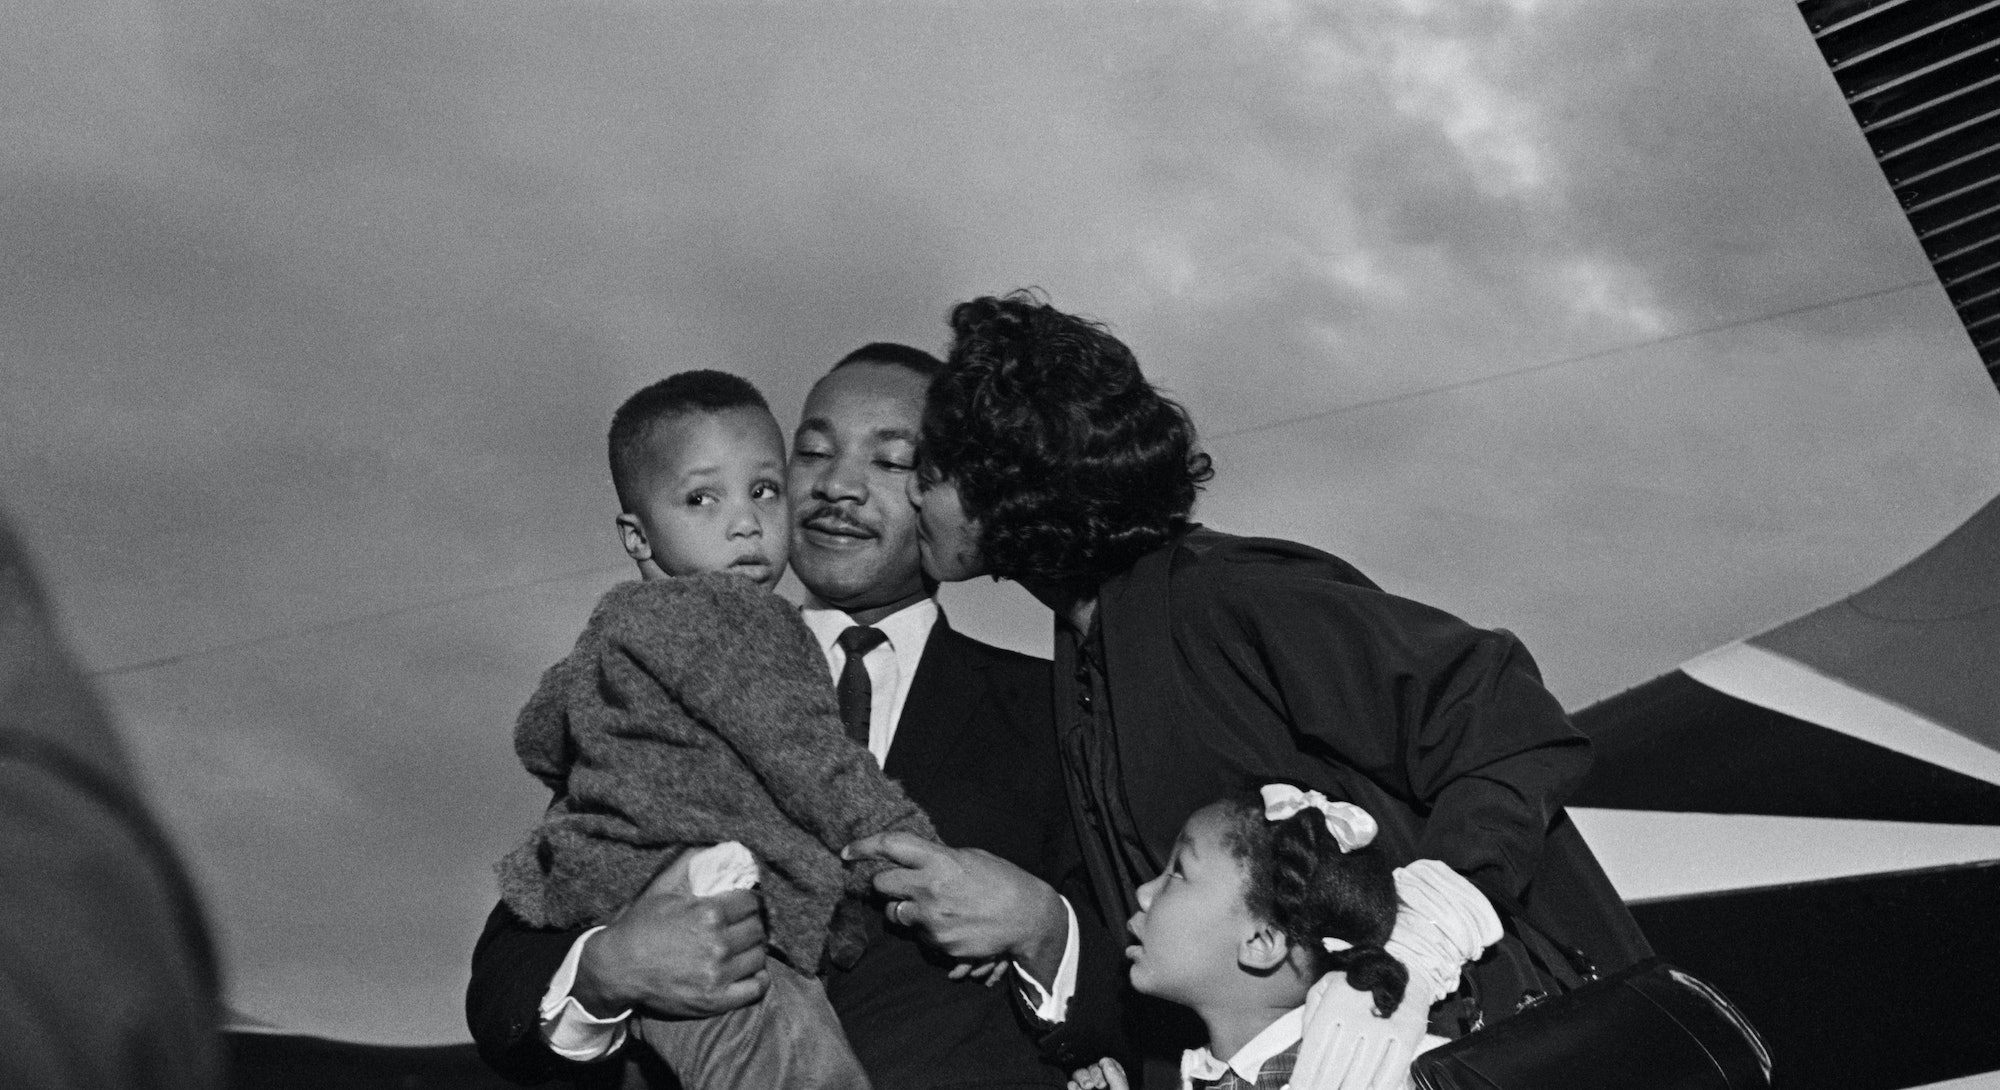 Martin Luther King Jr. was a proud dad, as evidenced by his quotes and photos with his children.